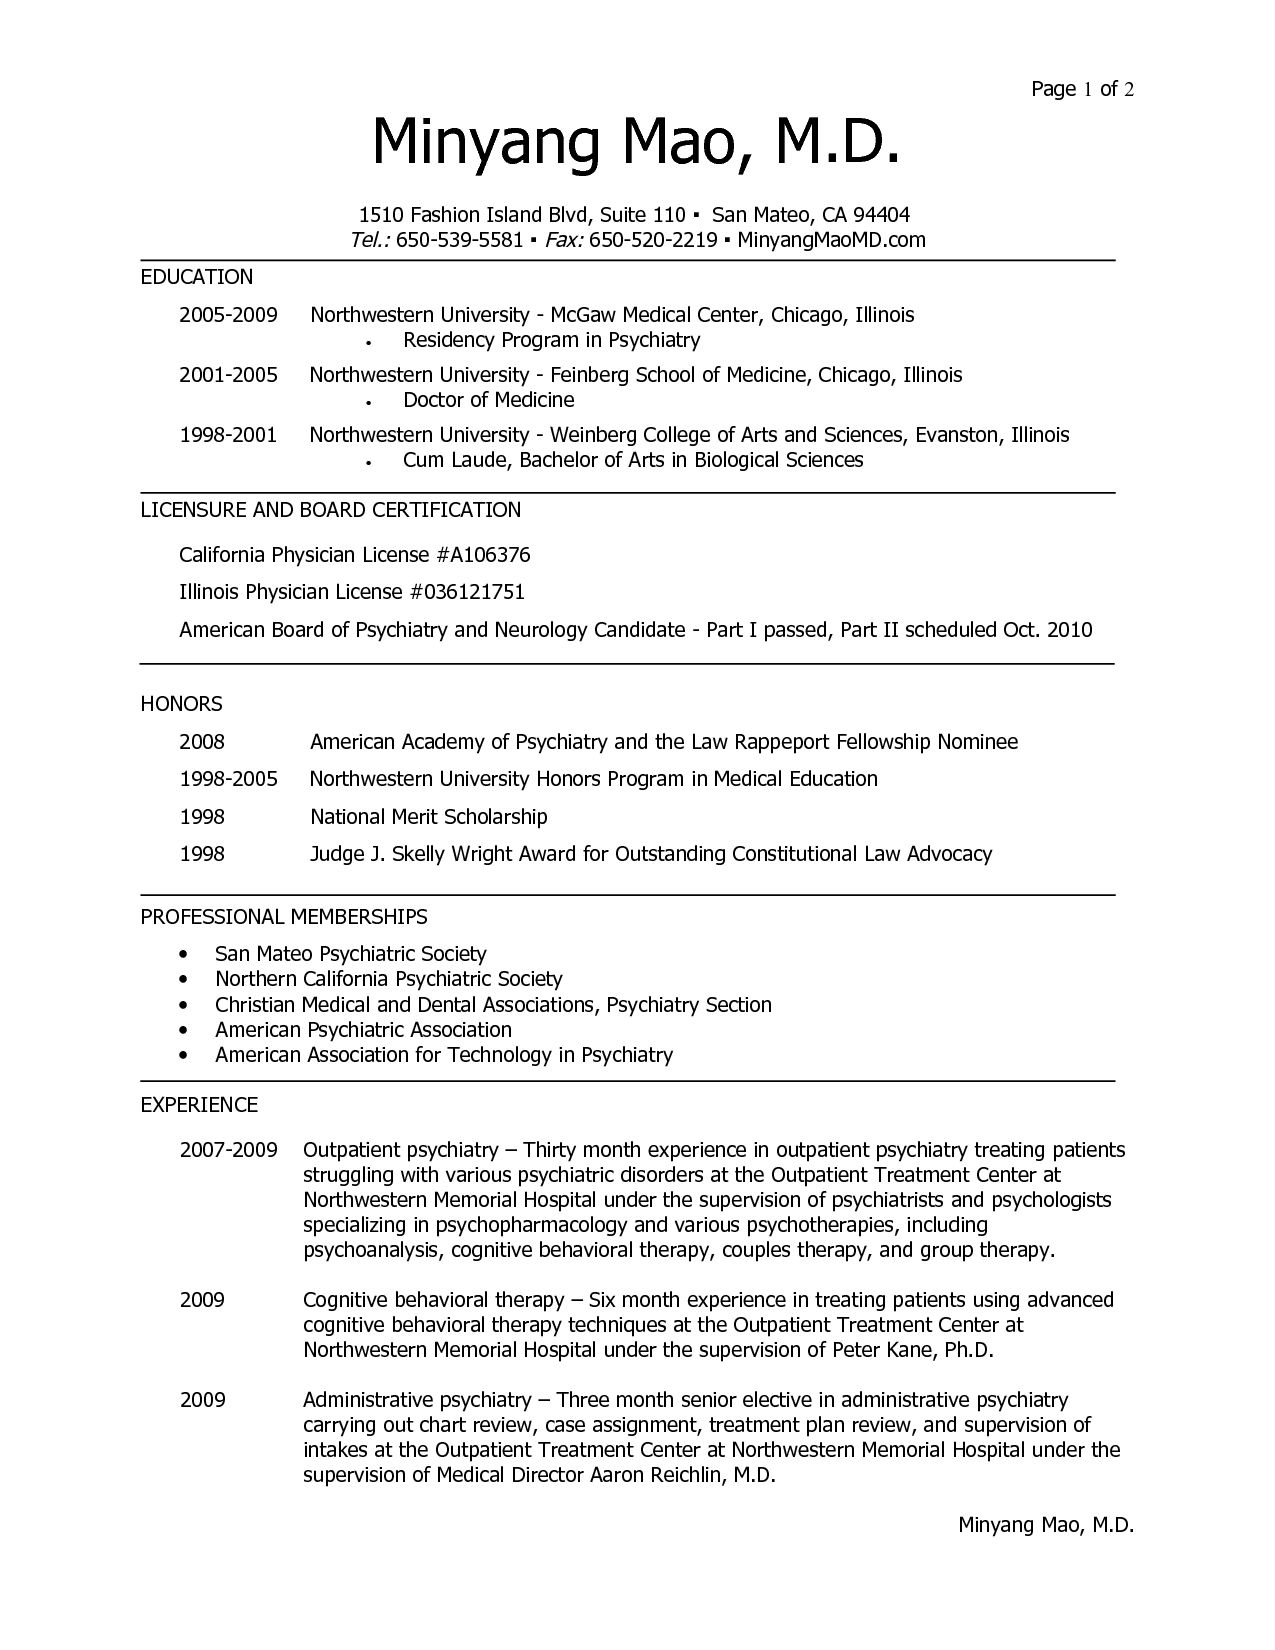 Student Affairs Resume Medical School Resume Template Medical School Resume Example